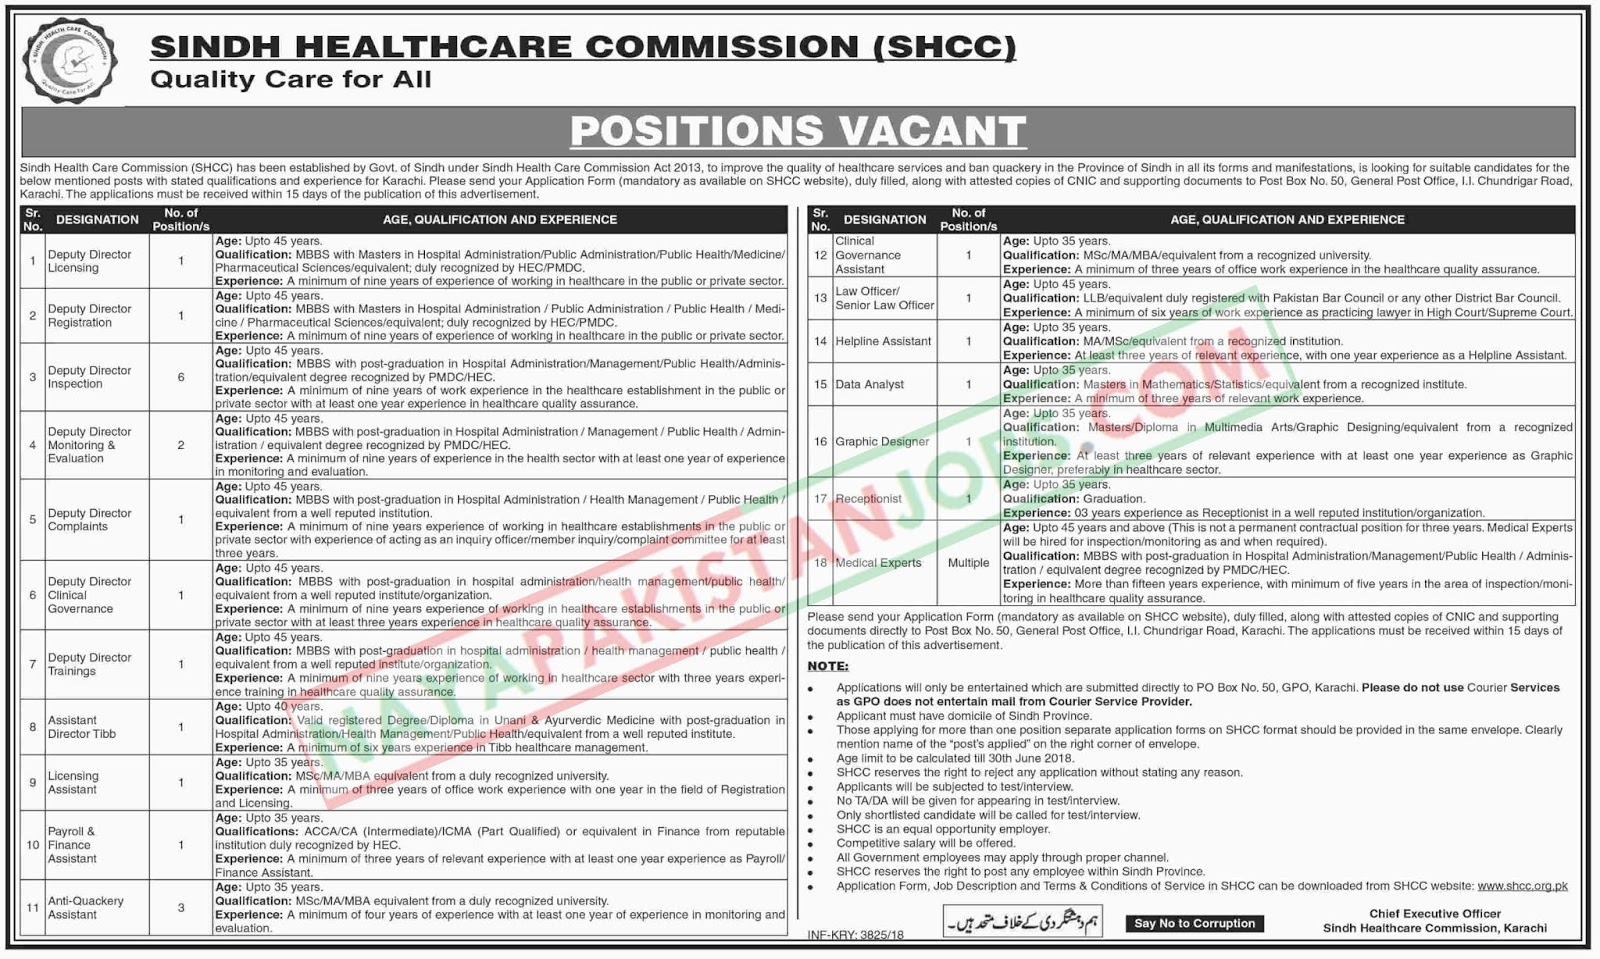 Latest Vacancies Announced in Sindh Healthcare Commission SHCC 29 October 2018 - Naya Pakistan